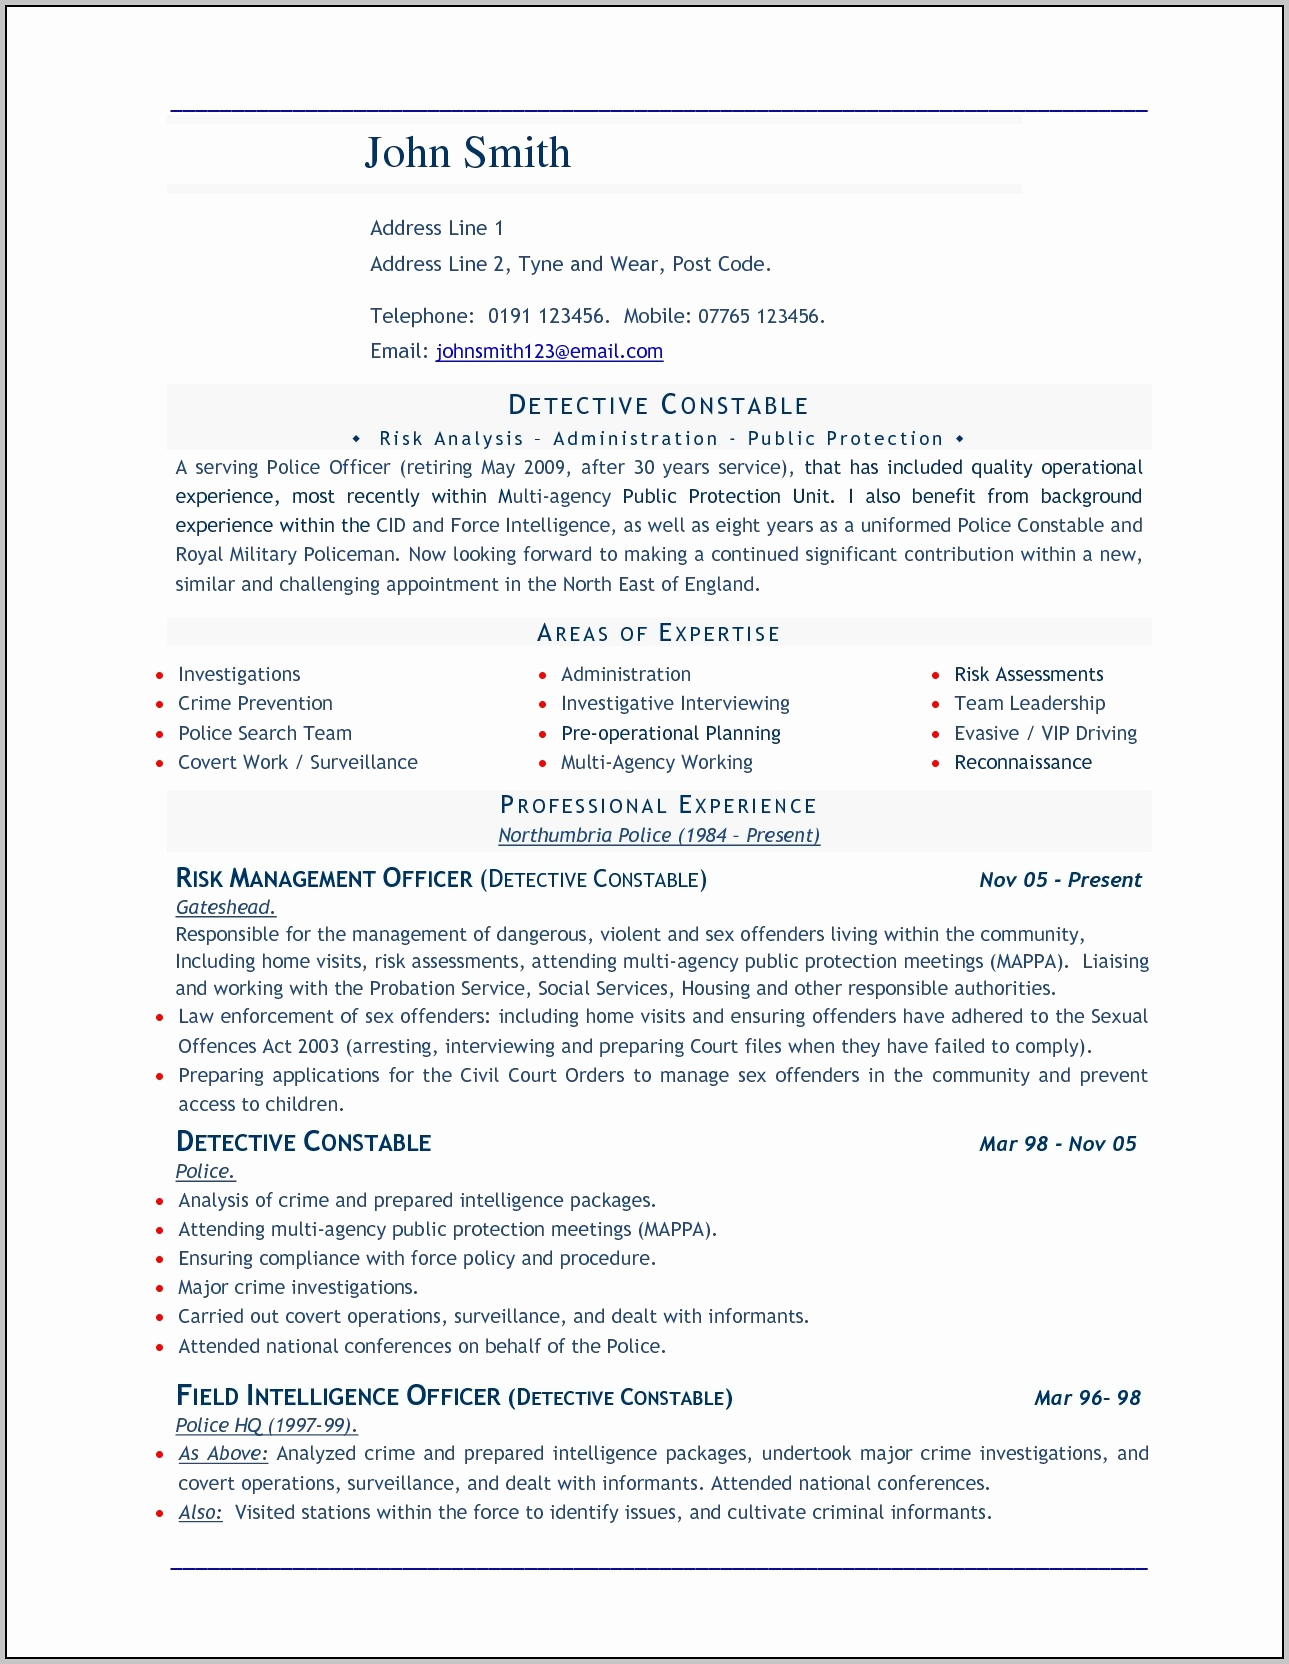 Curriculum Vitae Template Microsoft Word Lovely Best Resume Template Word Download Microsoft Word Resume